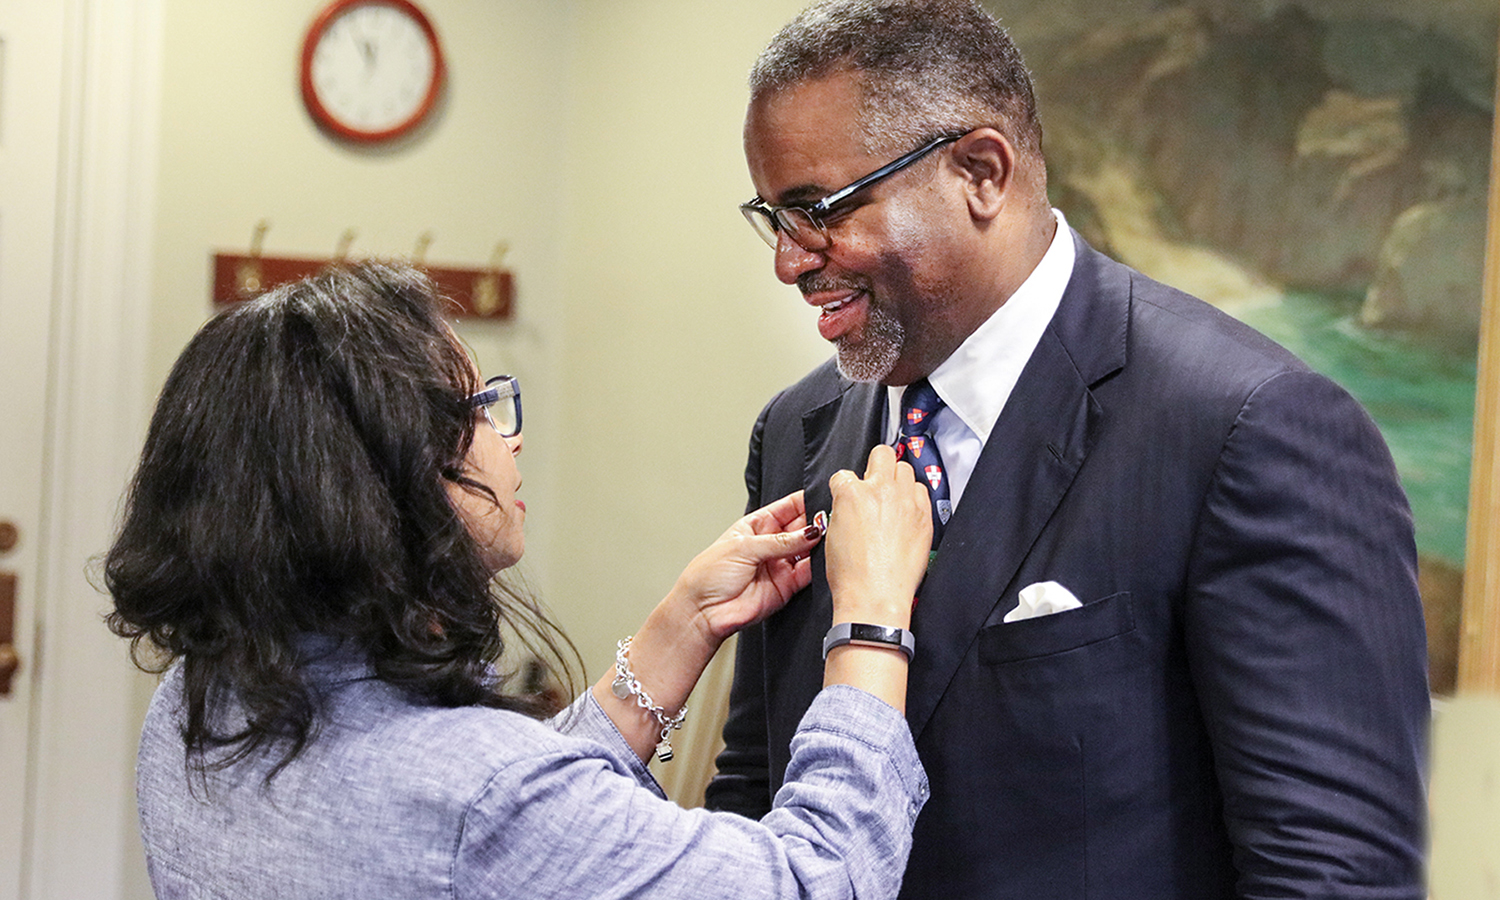 Kim Wilson Vincent places Hobart and William Smith pins on President Gregory J. Vincent's lapel.